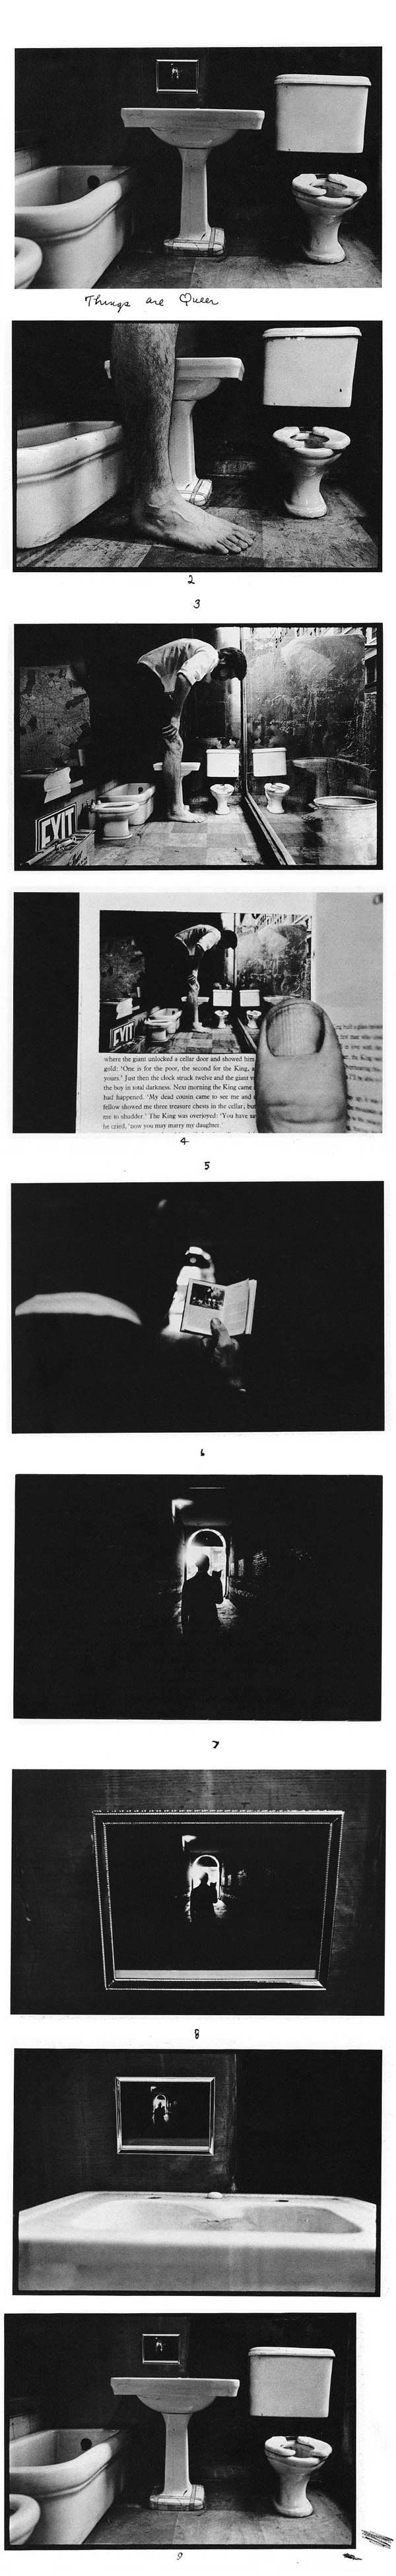 'Things are Queer' by Duane Michals is the inspiration for THE LOOP option from the Crooked assignment.